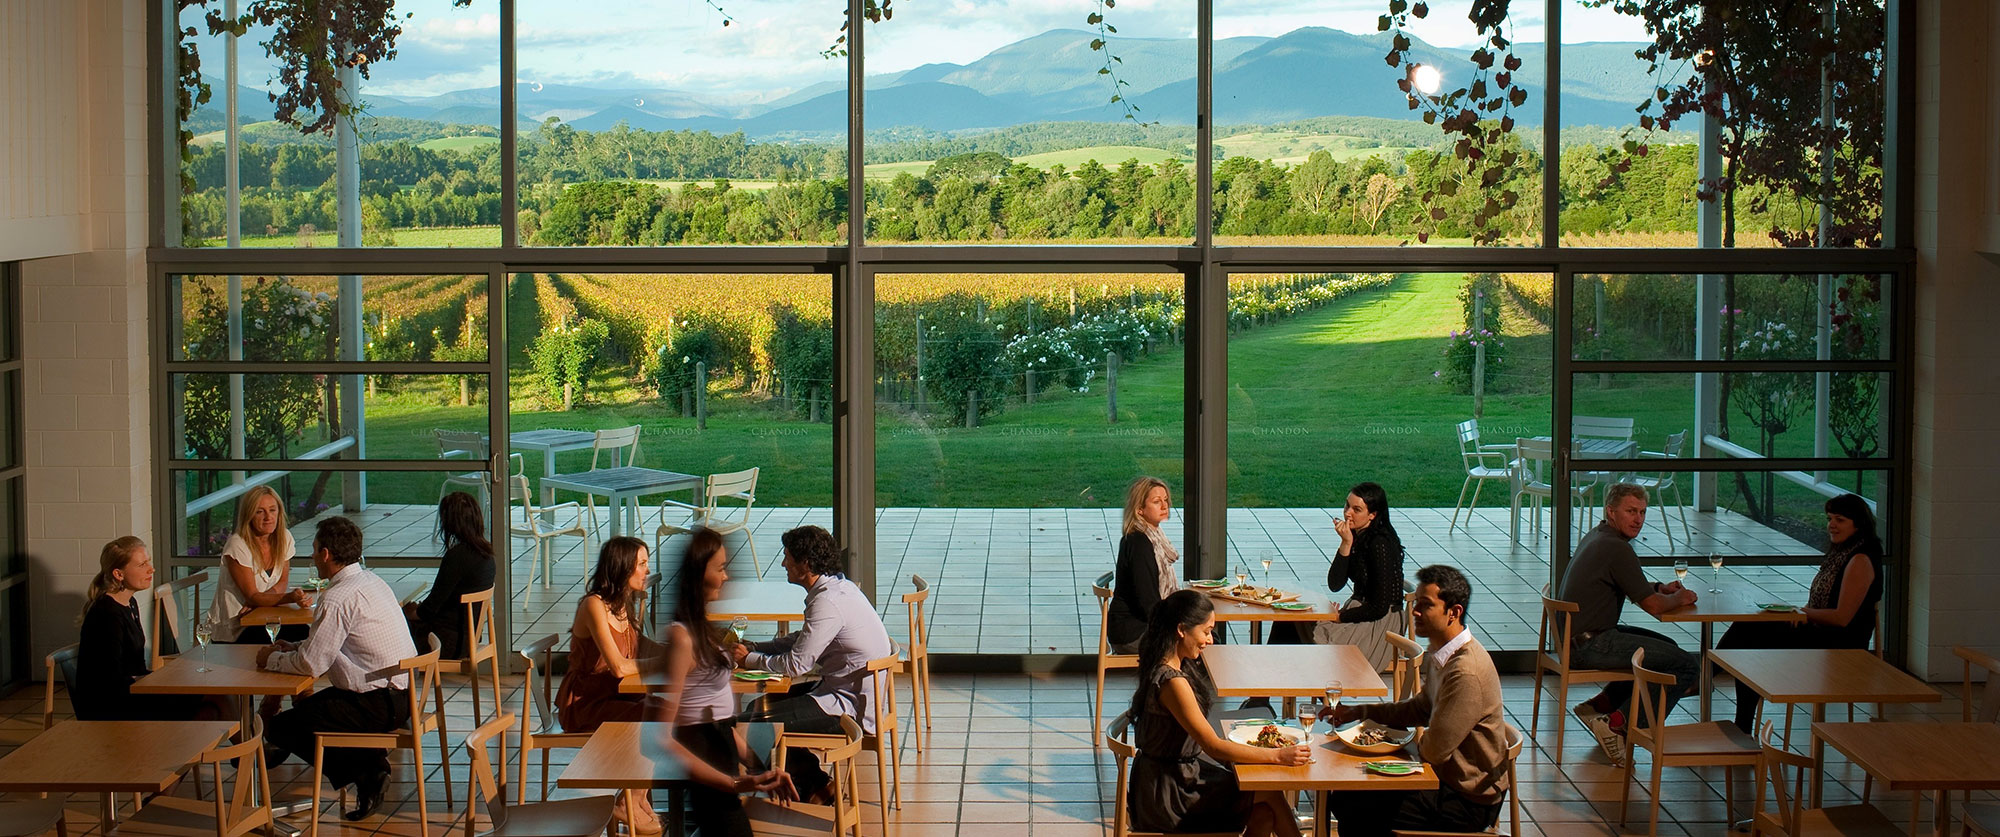 Dining At Domaine Chandon Winery In The Yarra Valley Melbourne